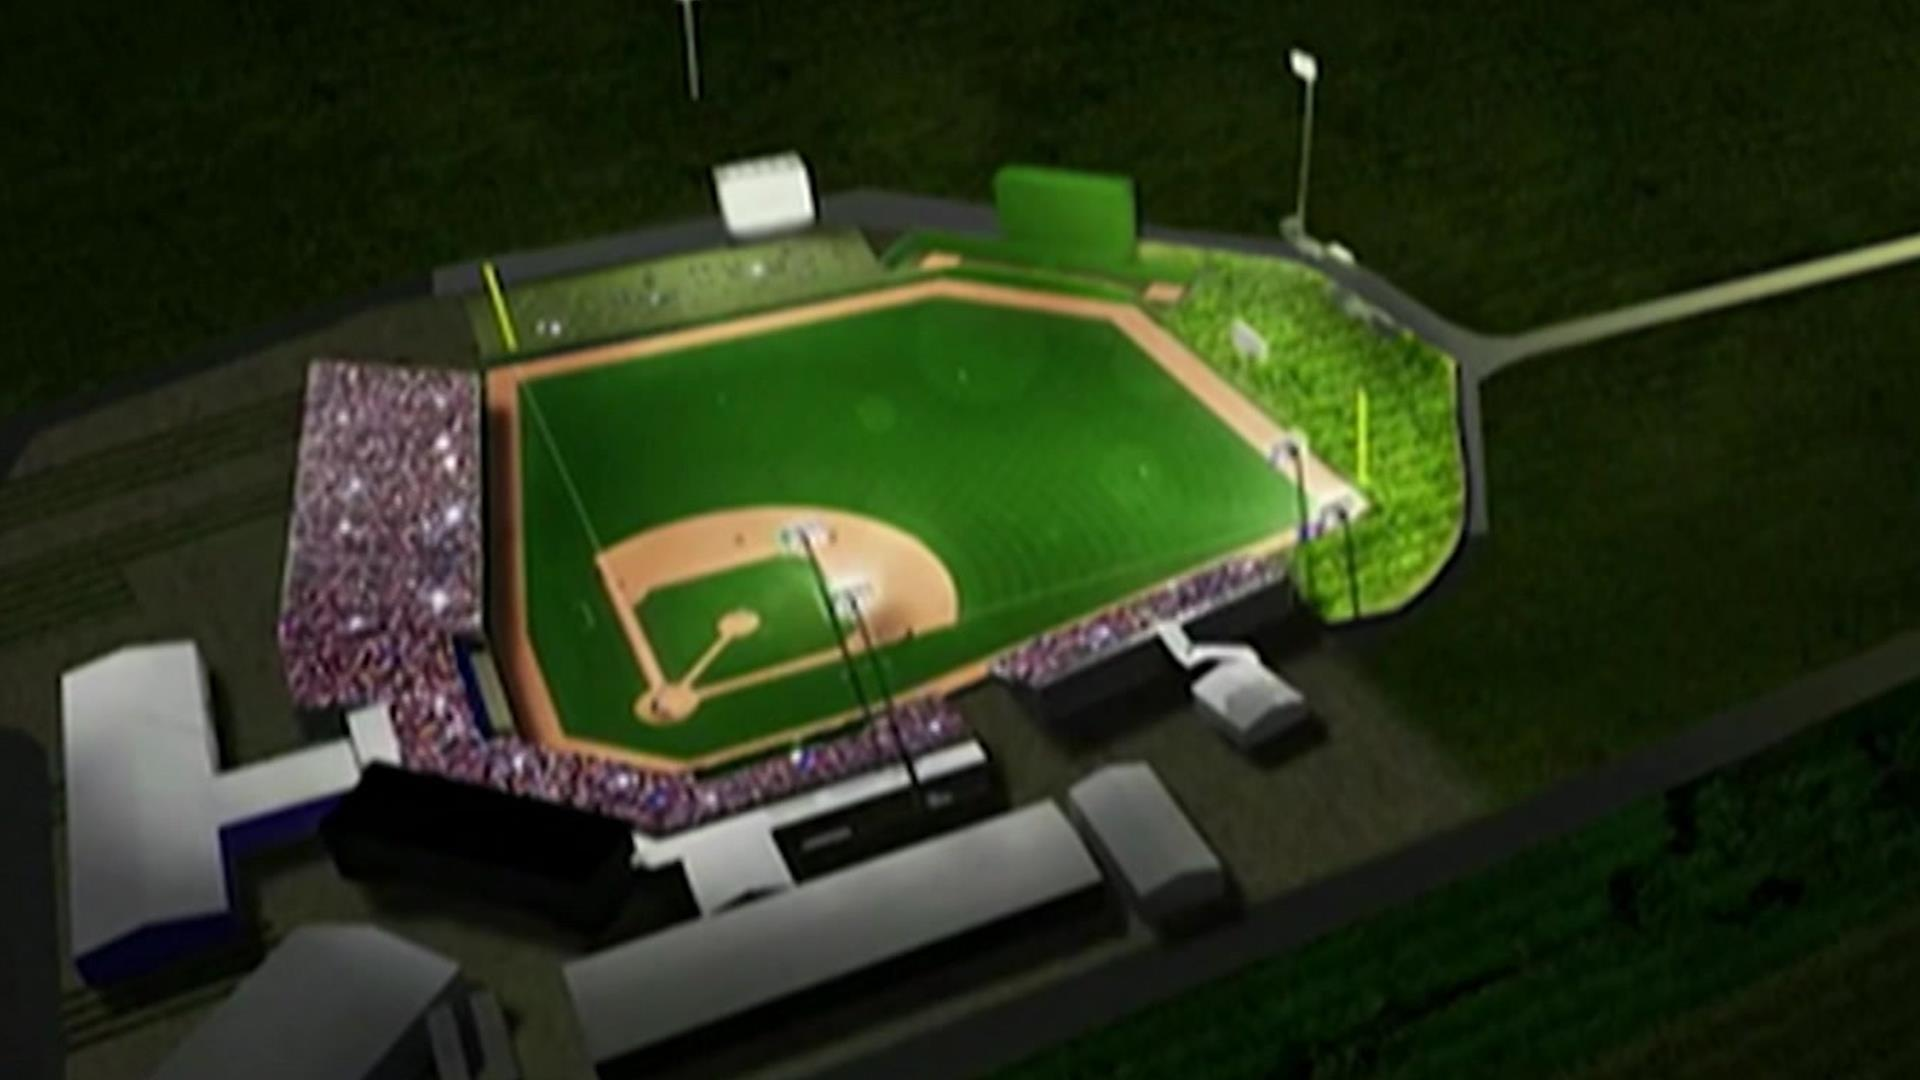 WATCH: 3D Models of new 'Field of Dreams' for White Sox game in 2020